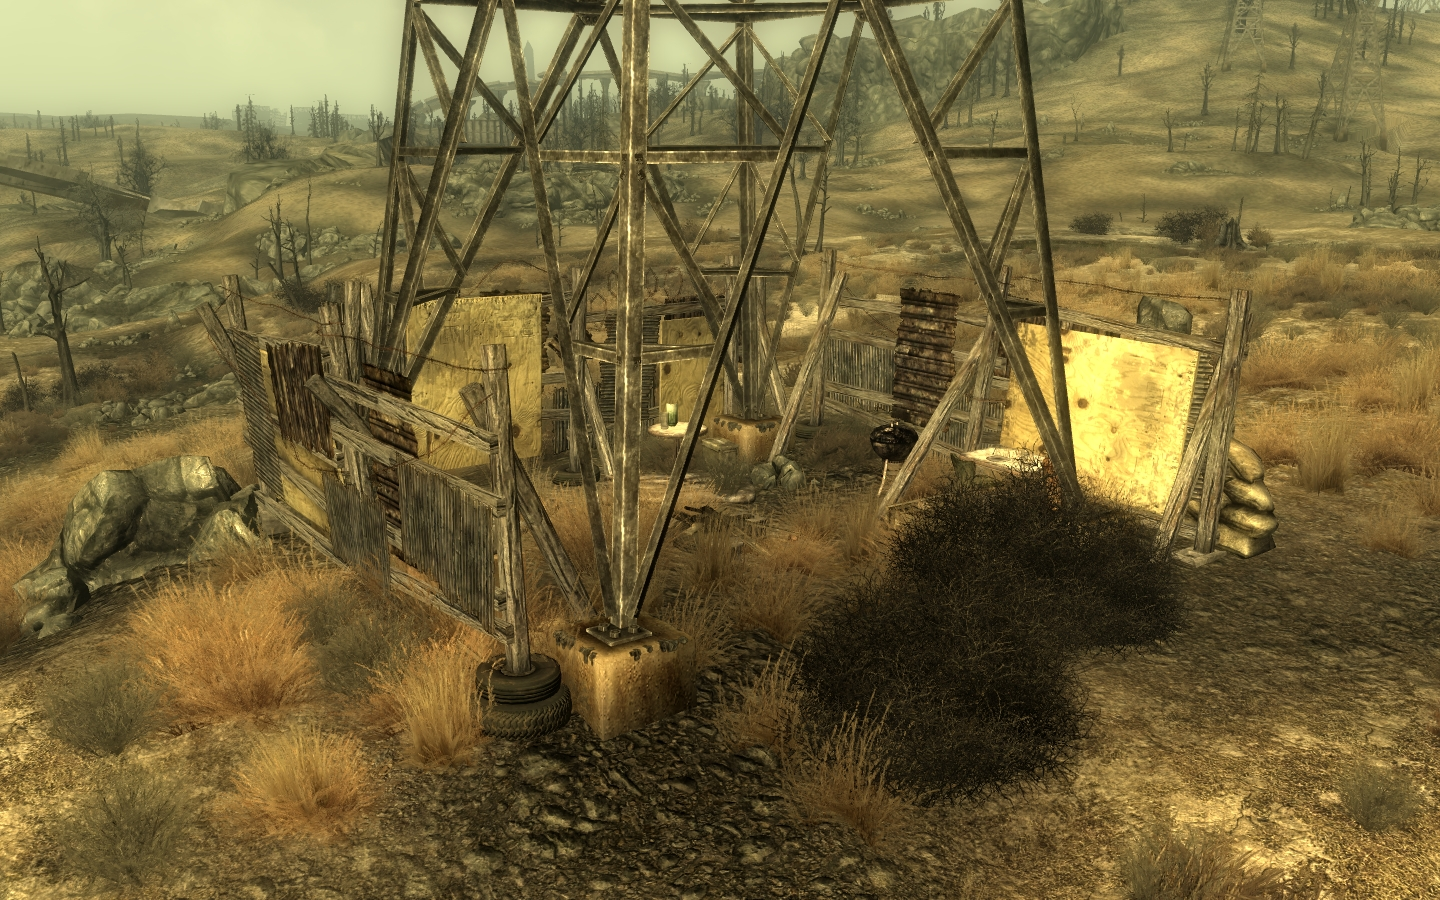 Pylon Shack Fallout Wiki Fandom Powered By Wikia